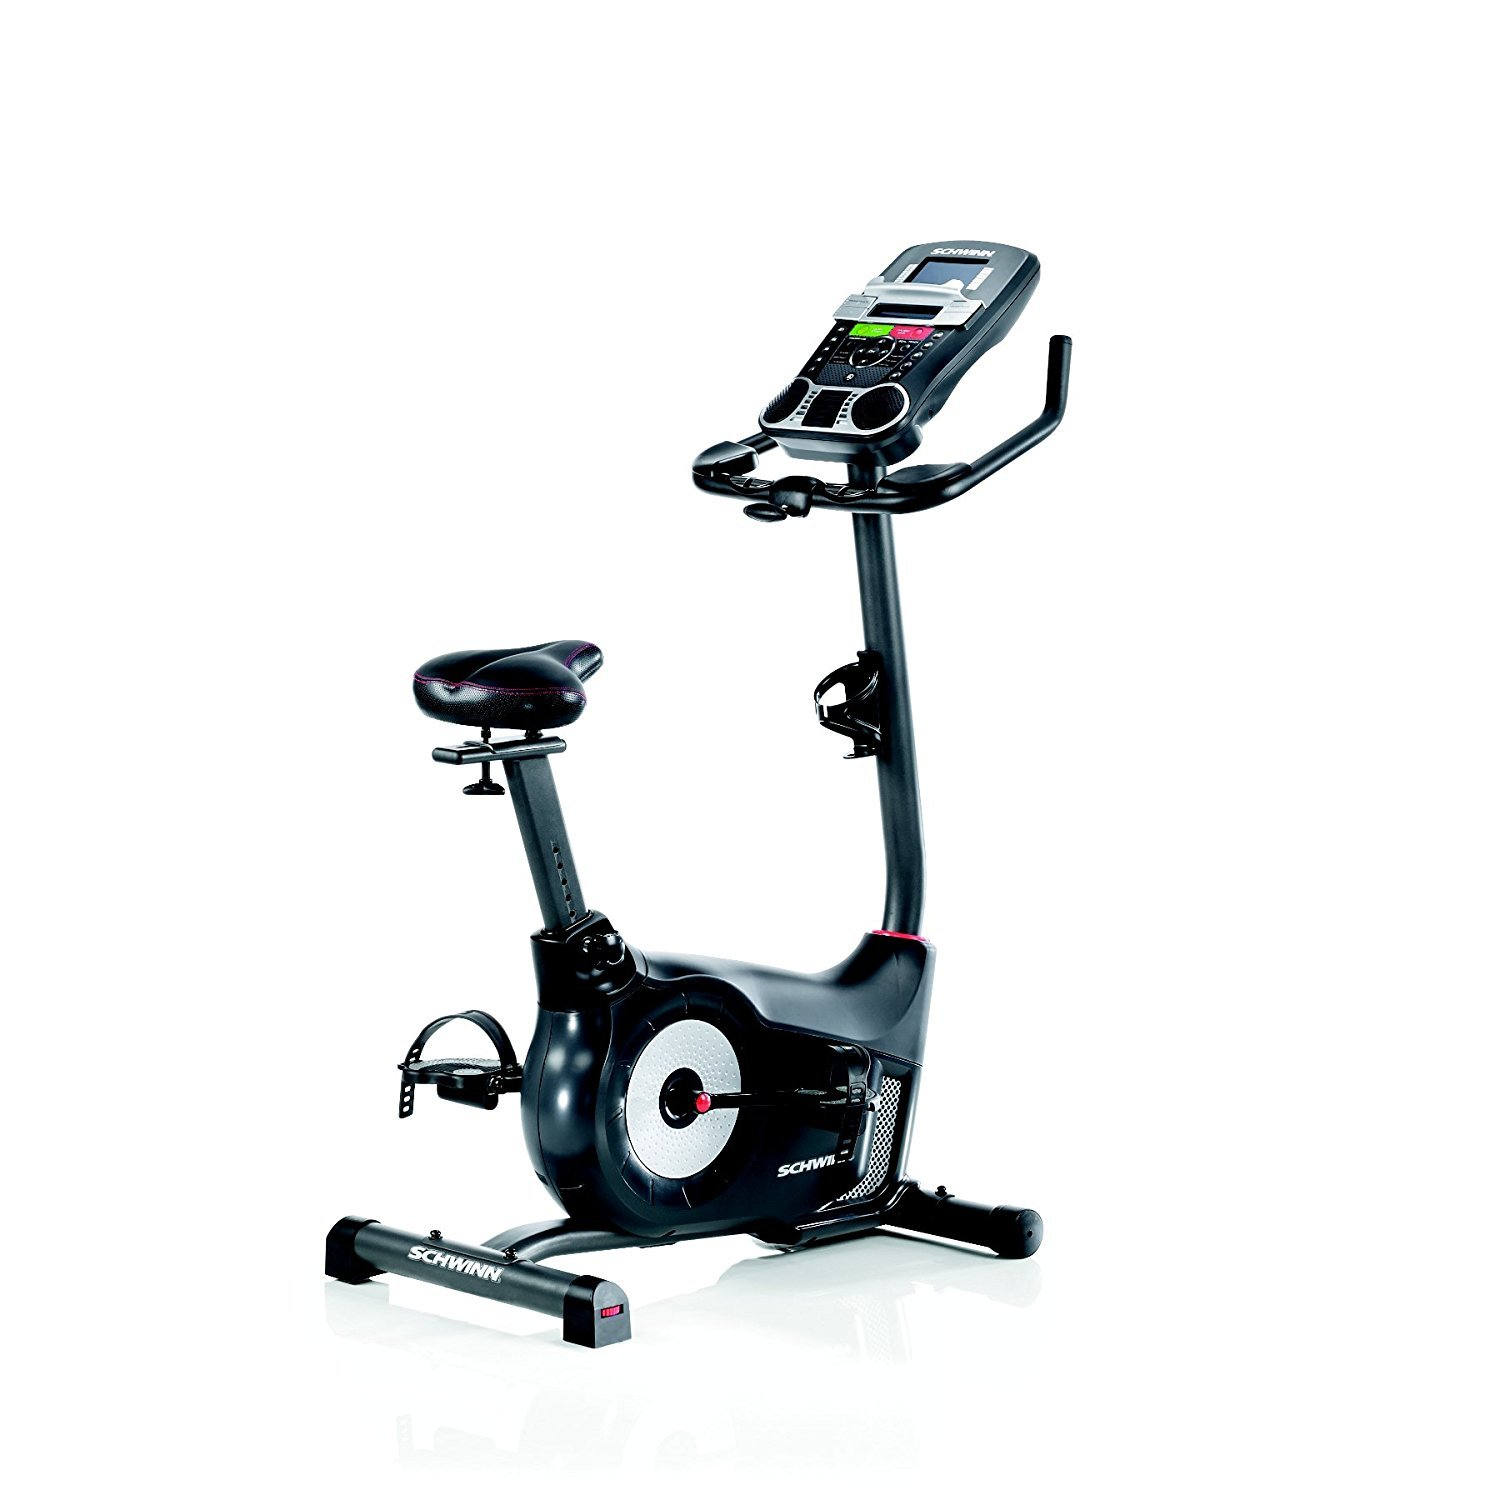 the Schwinn 170 Upright Bike is a top-notch model